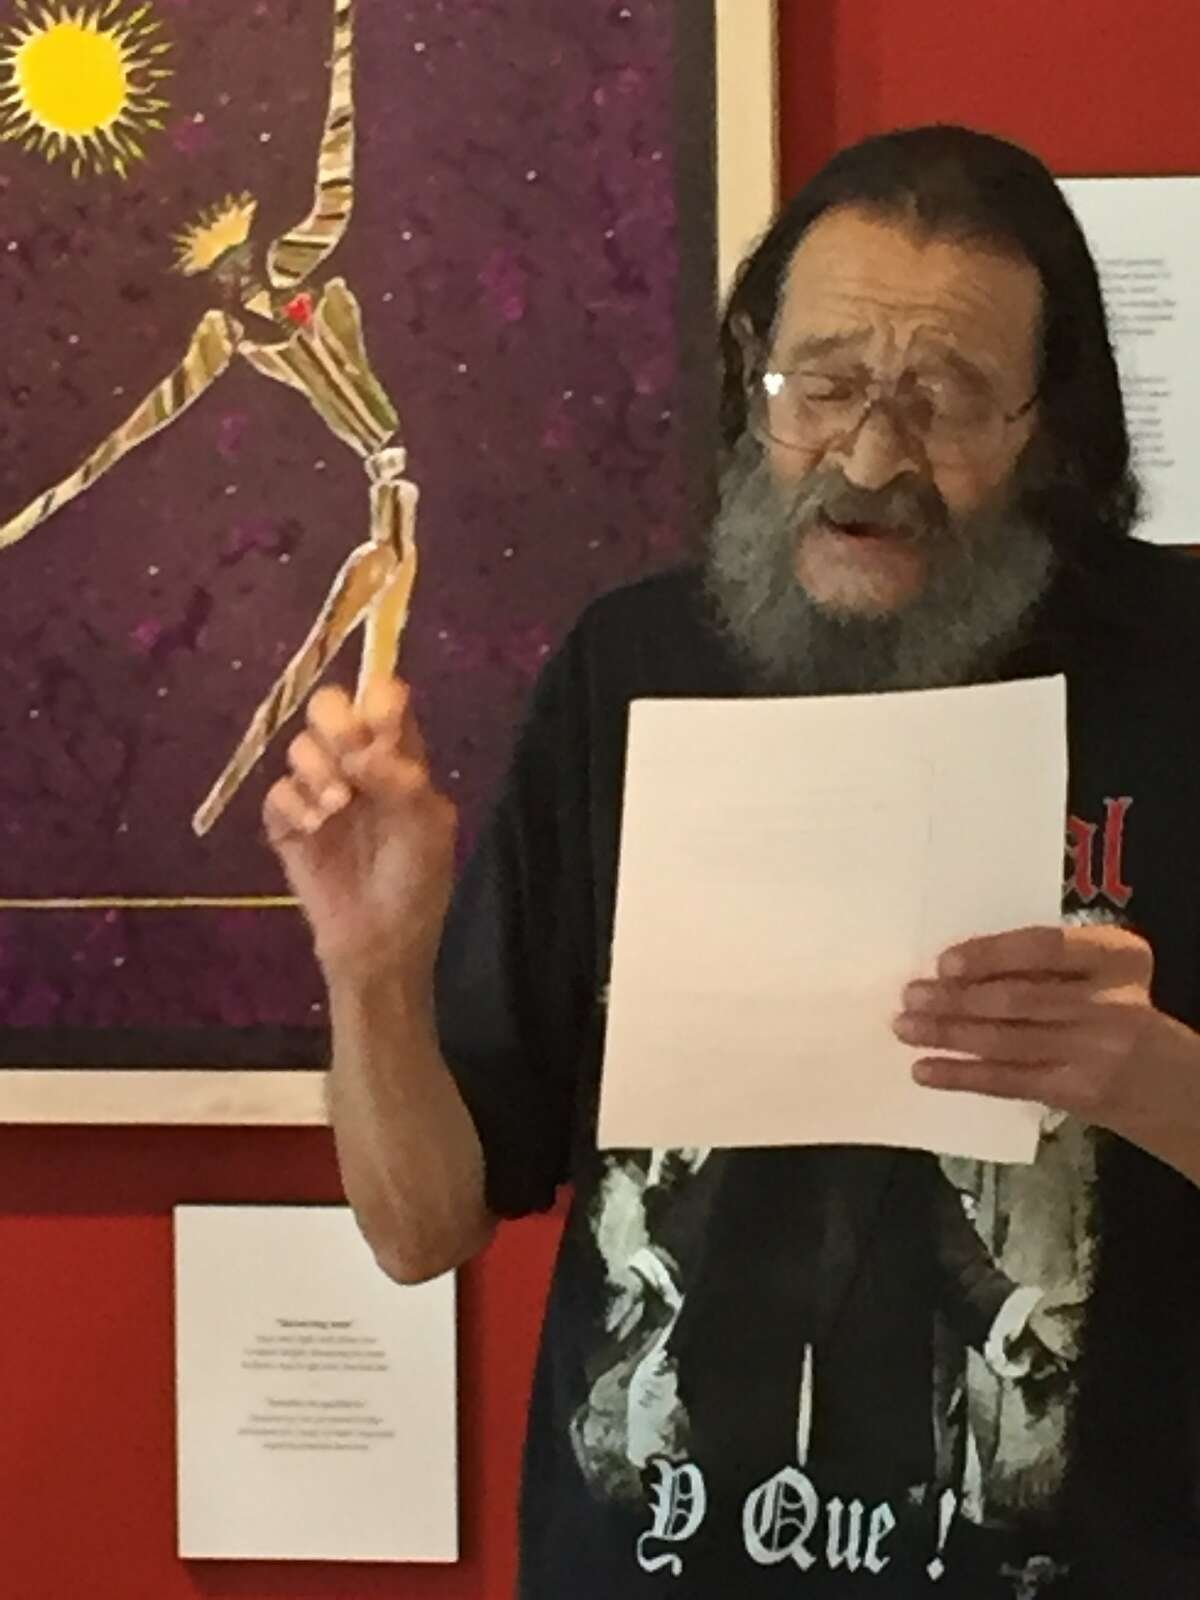 Q.R. Hand Jr. performed his poetry at Casa Latina in Berkeley on August 14, 2016.